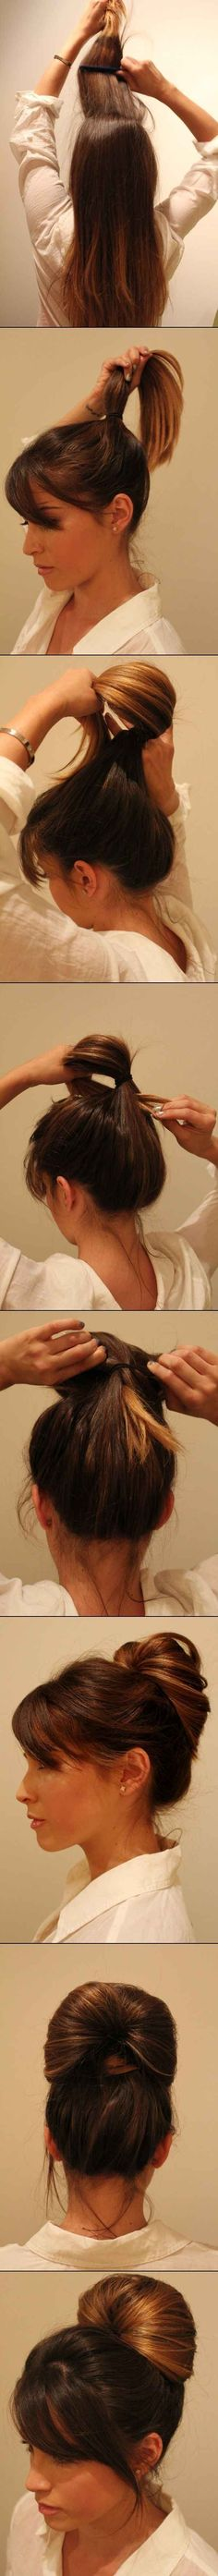 Chignon - 16 Gorgeous Hair for Lazy Girls like Me . → Hair Chignon - 16 Gorgeous Hair for Lazy Girls like Me . Pretty Hairstyles, Easy Hairstyles, Medium Hairstyles, Latest Hairstyles, Wedding Hairstyles, Office Hairstyles, Fashion Hairstyles, New Hair, Your Hair